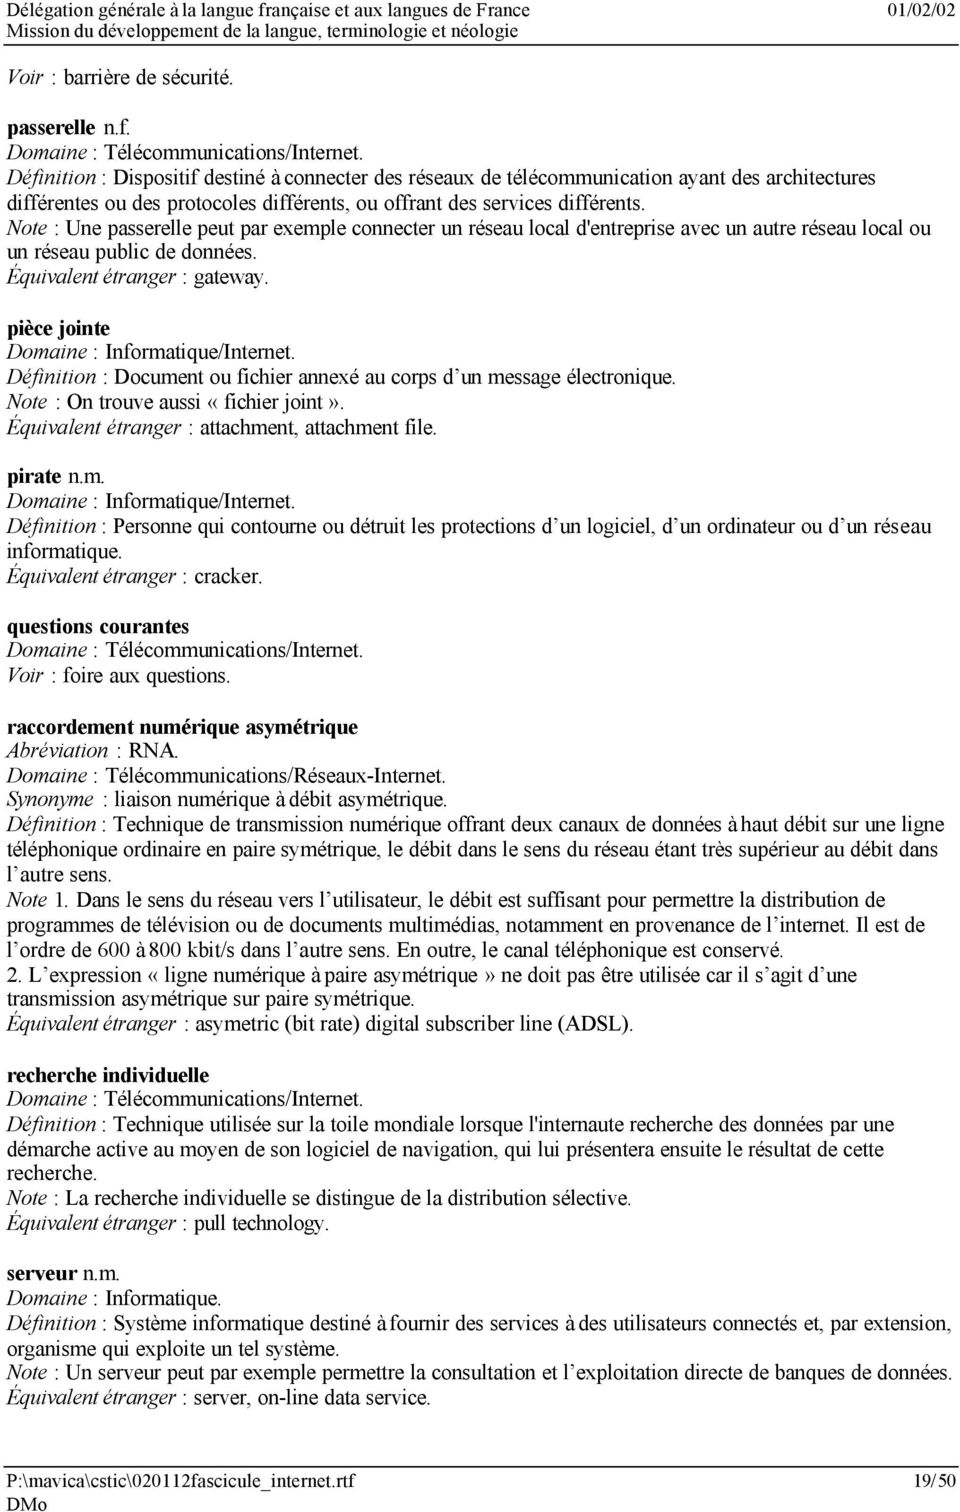 Vocabulaire de l internet et de l informatique pdf for Passerelle definition